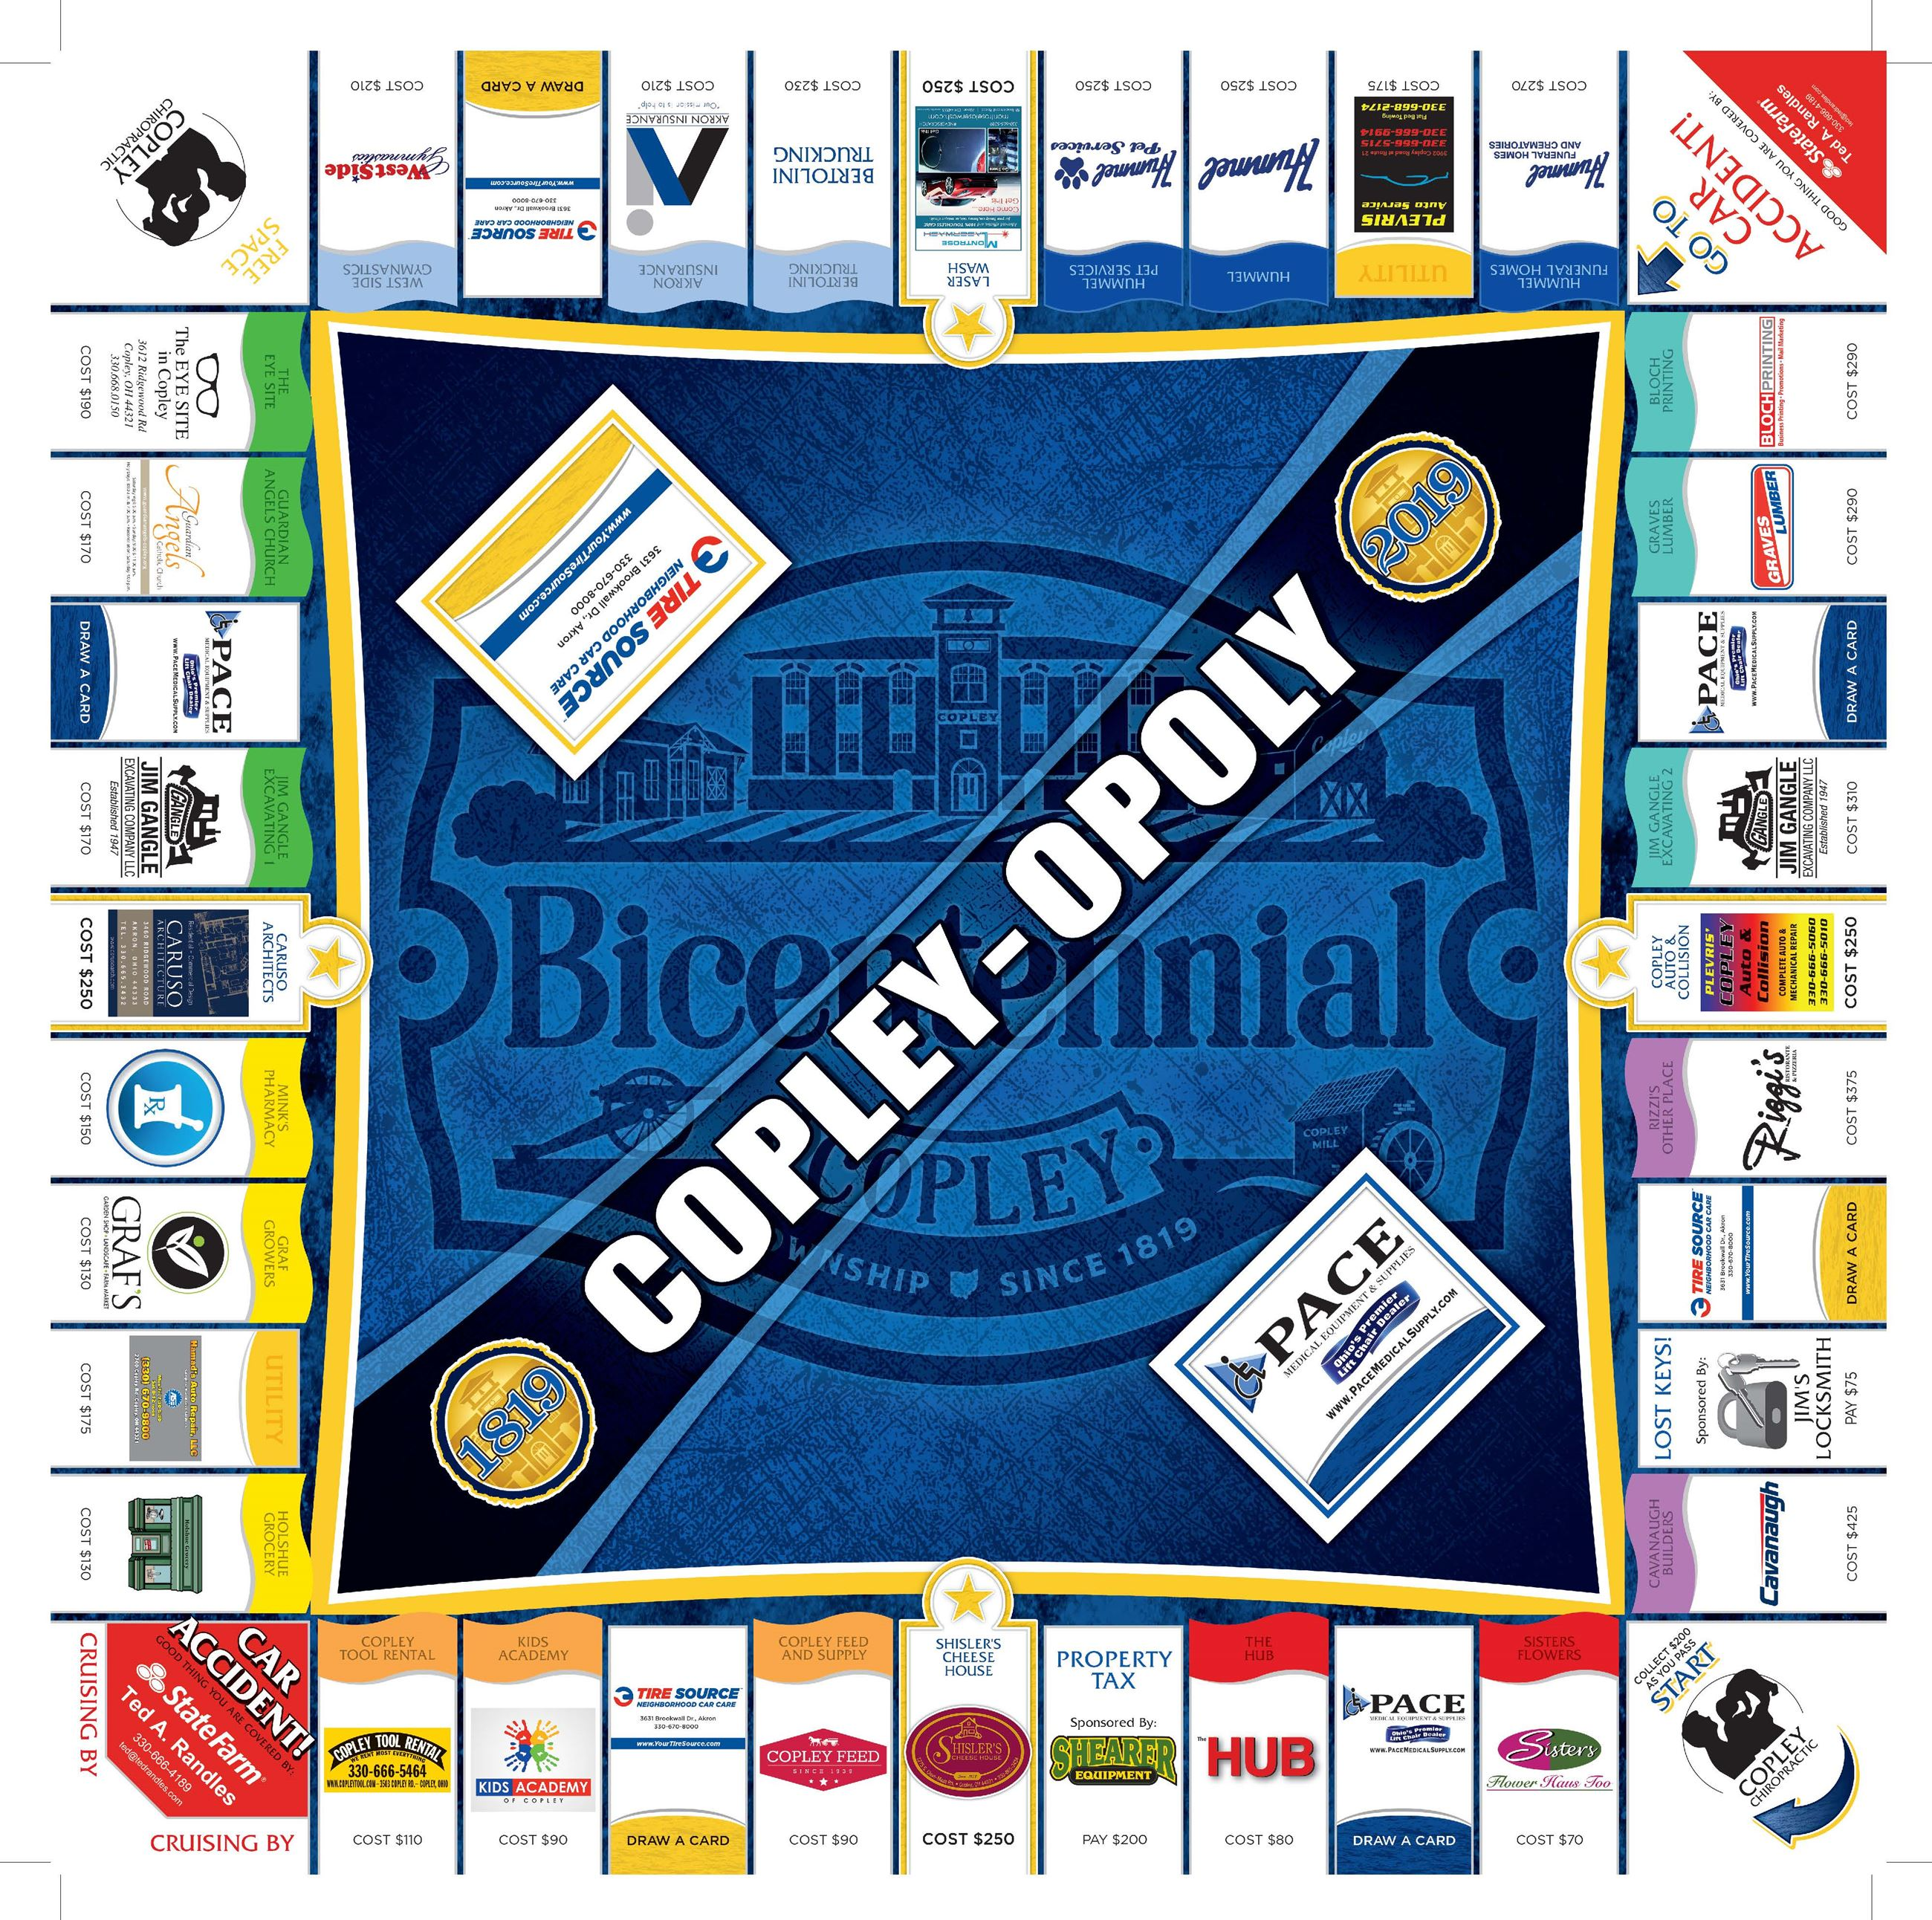 COPLEY-OPOLY Game Board